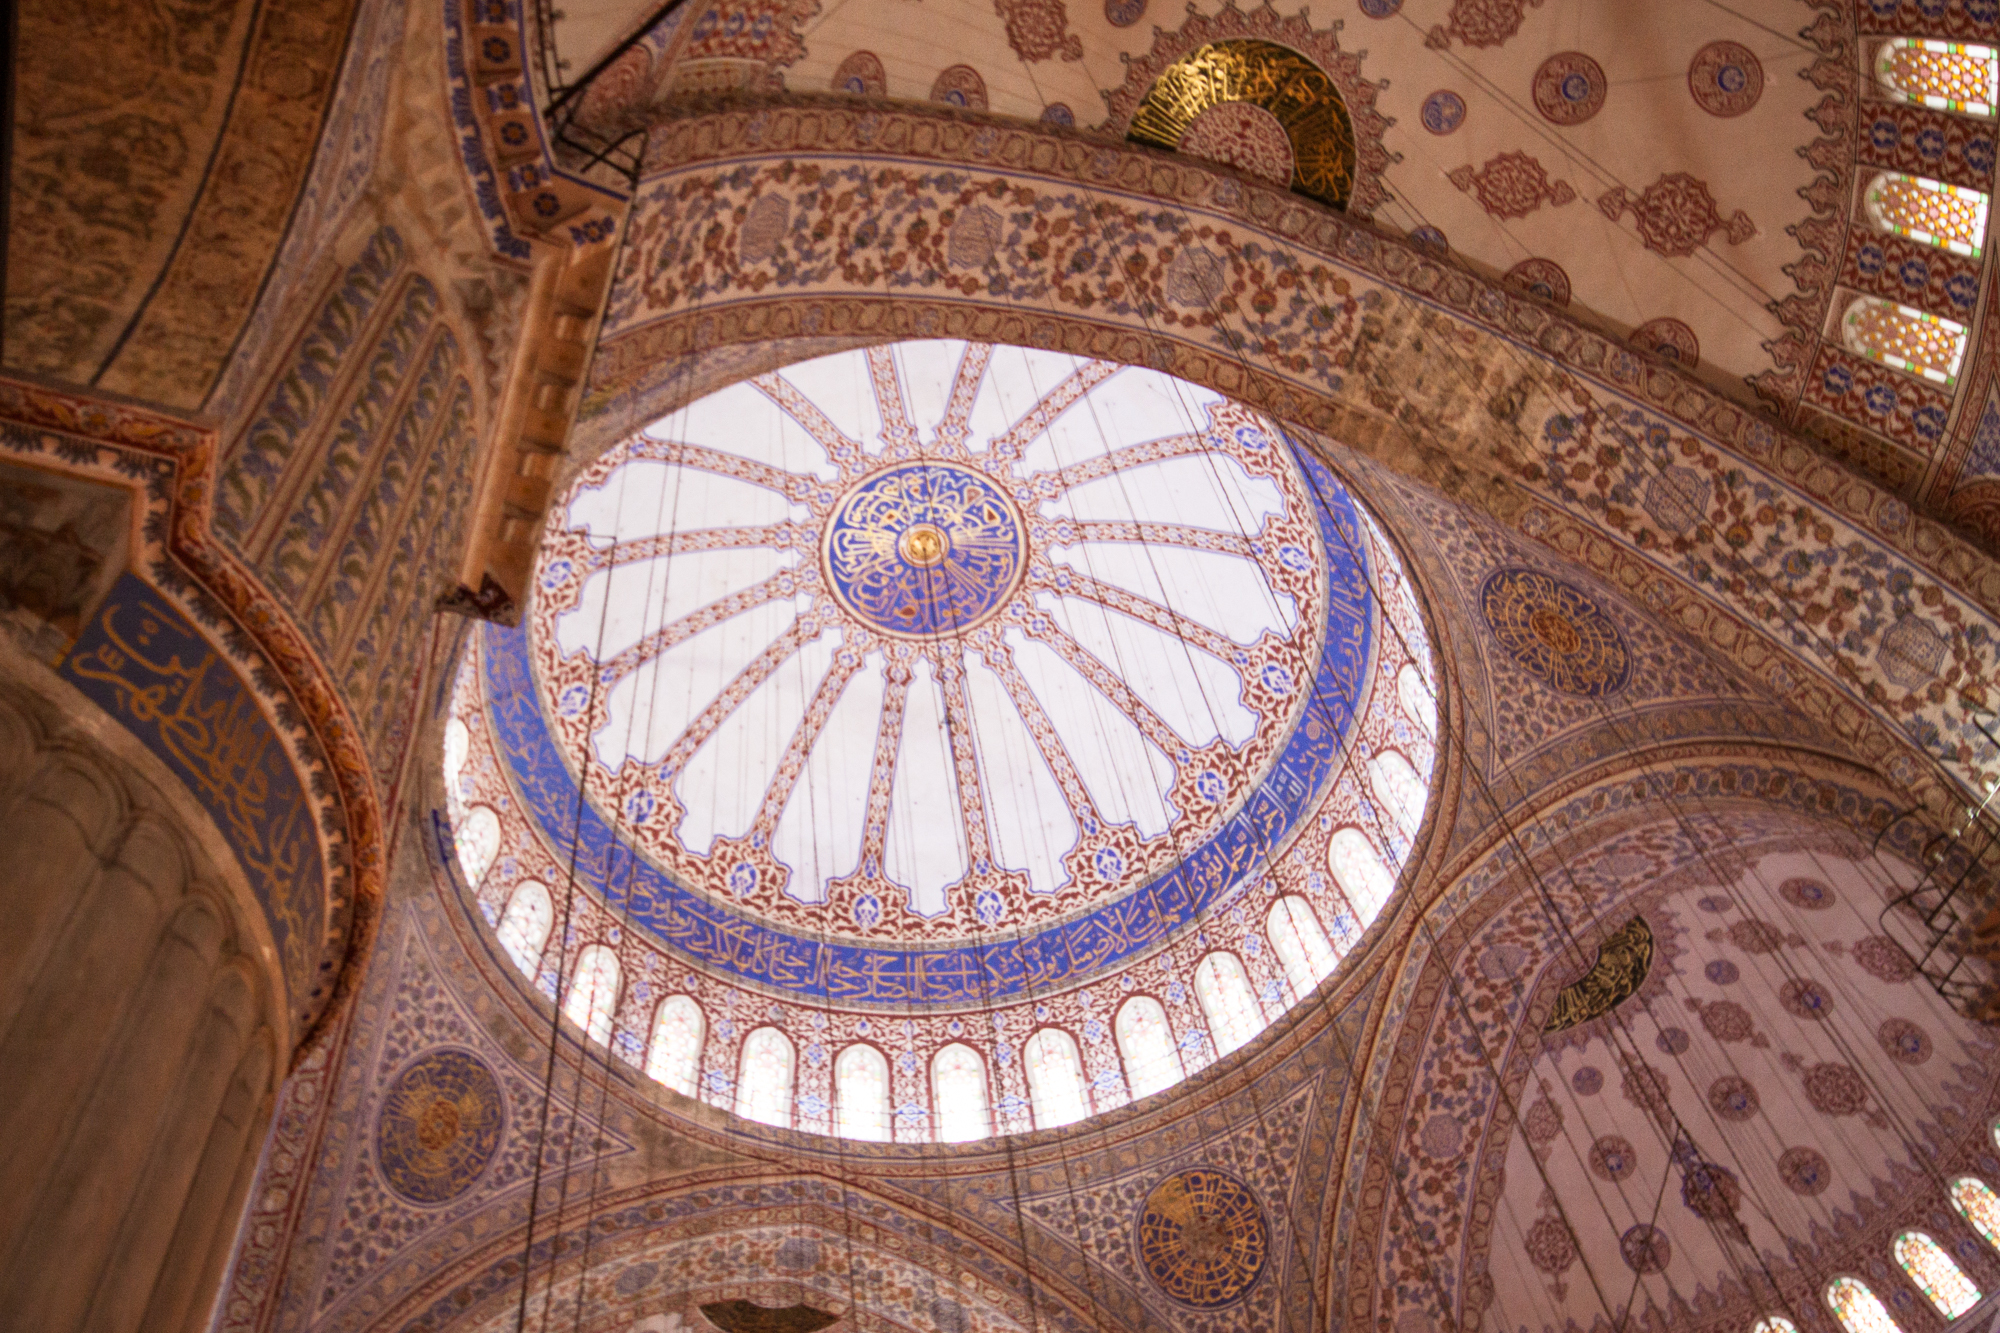 looking up at the dome inside the Blue Mosque